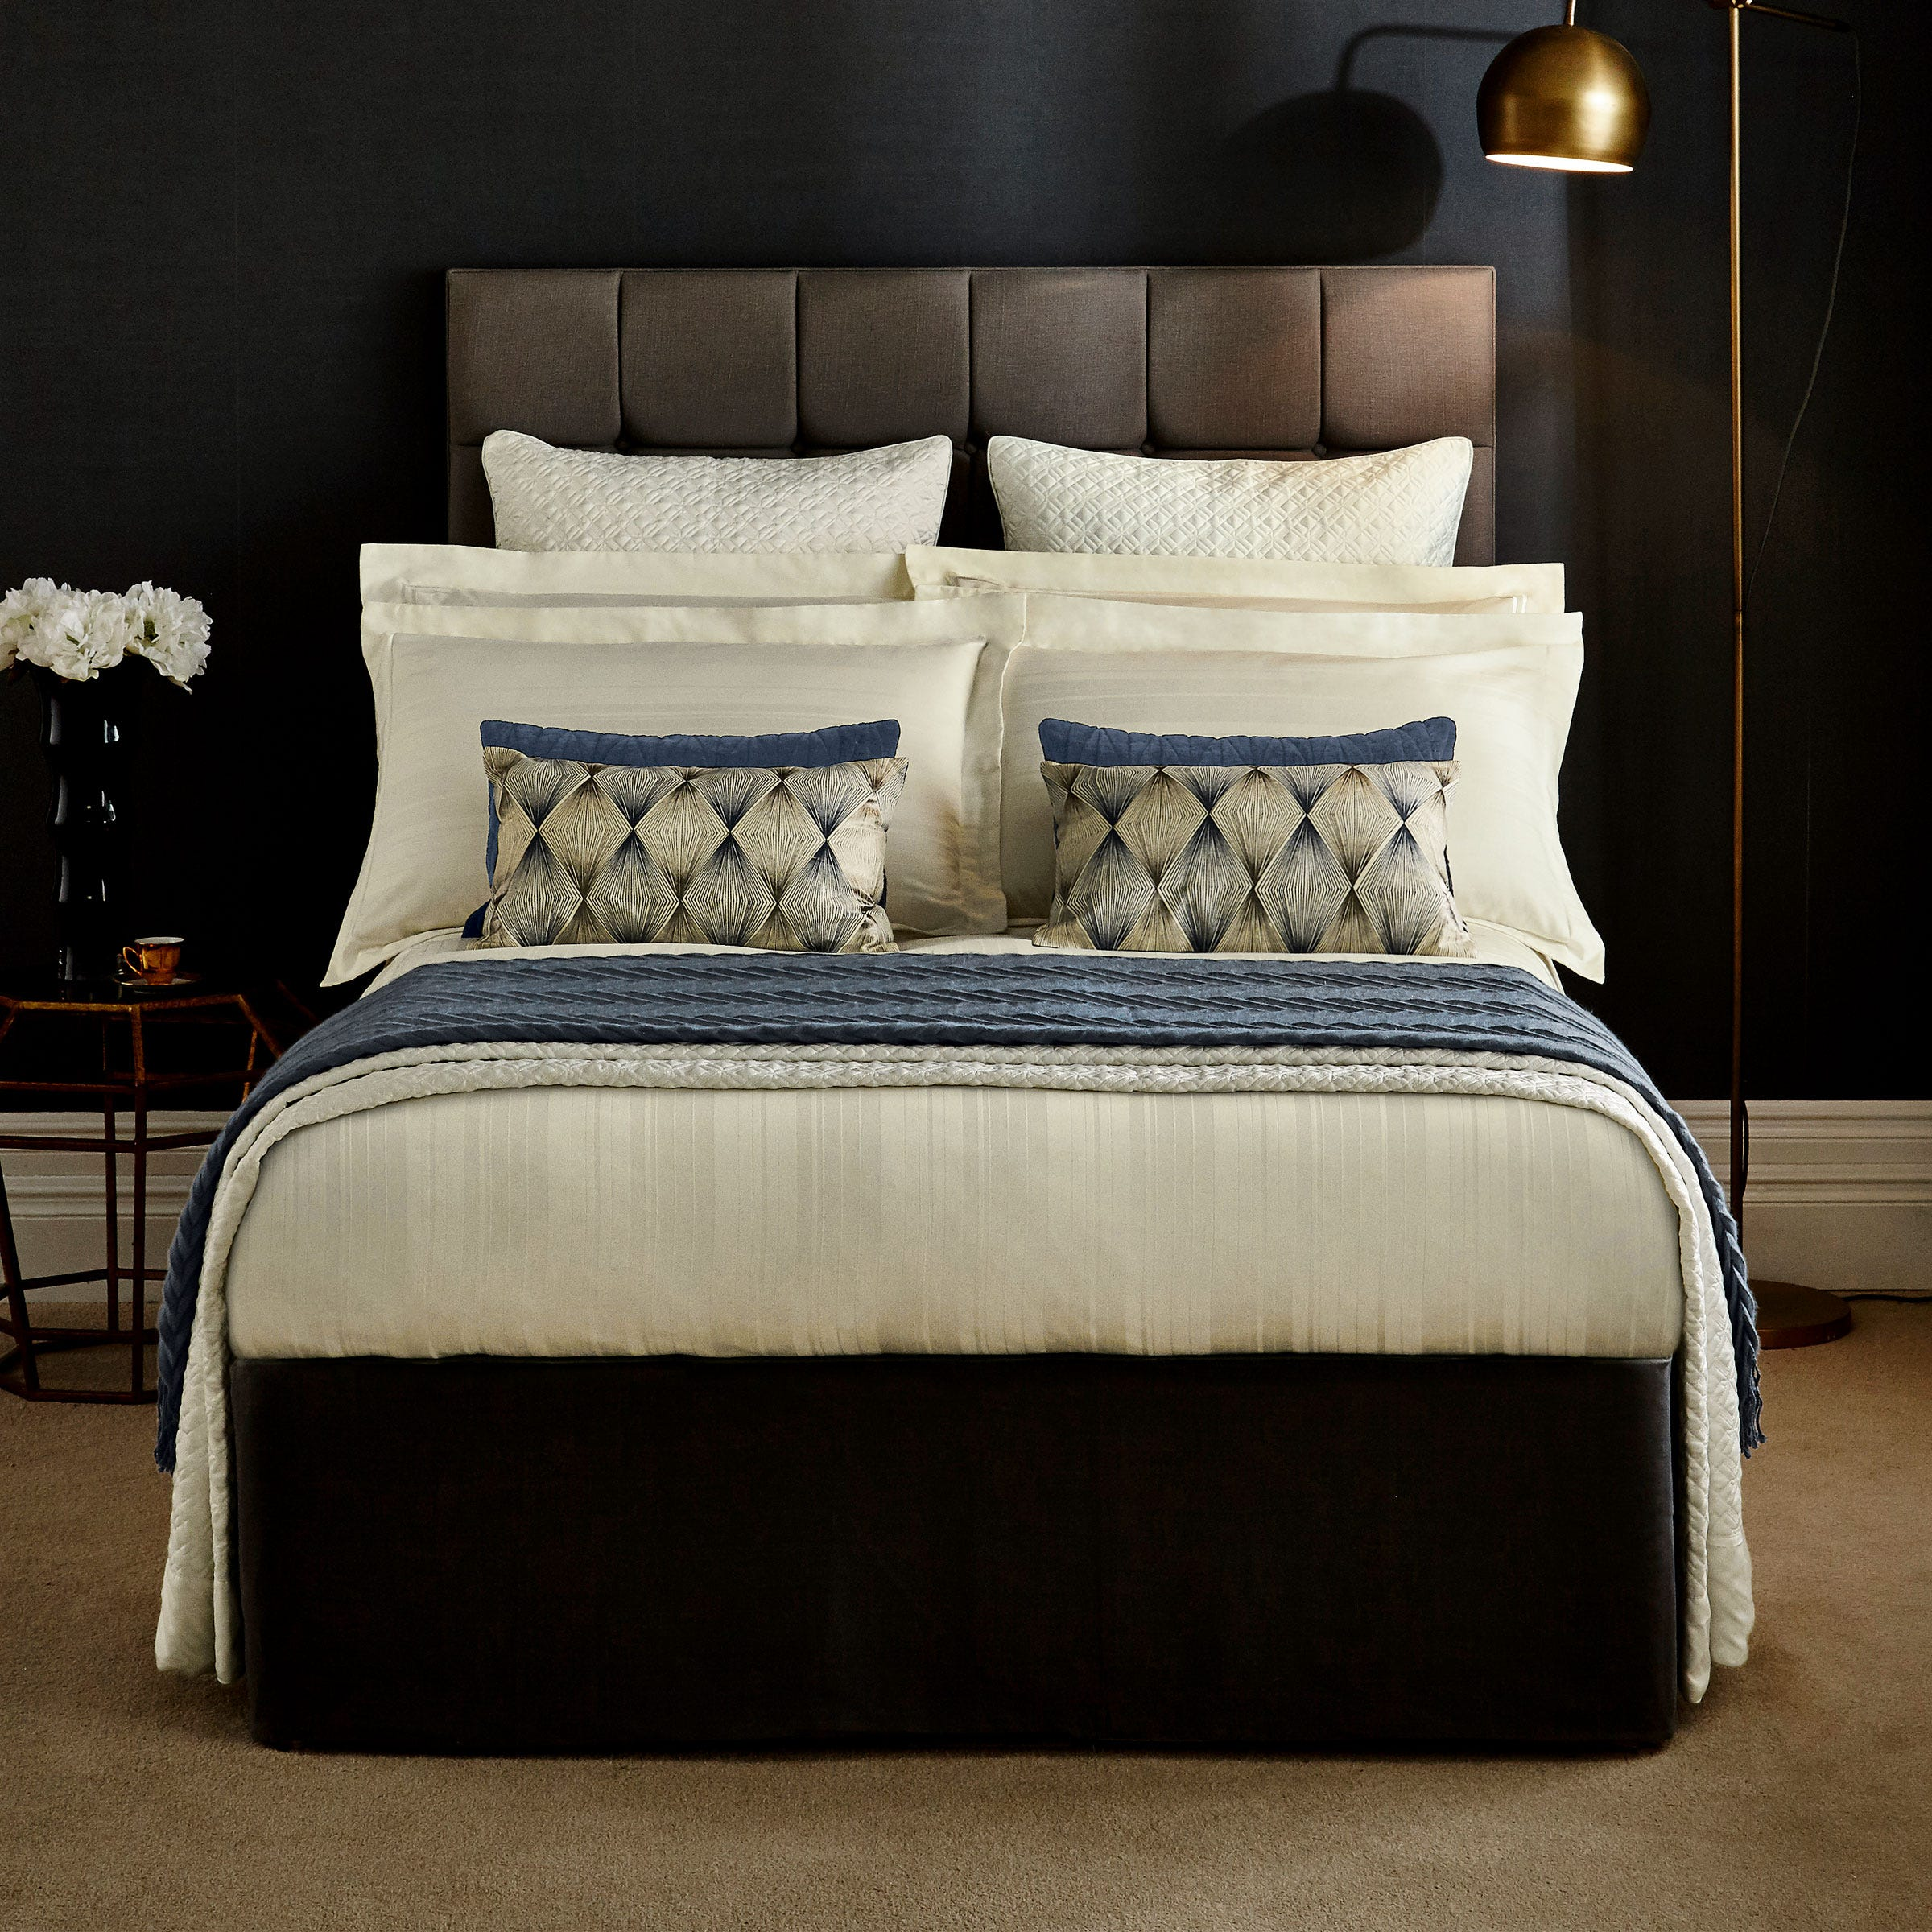 Peacock Blue Bexley Bedding in Ivory